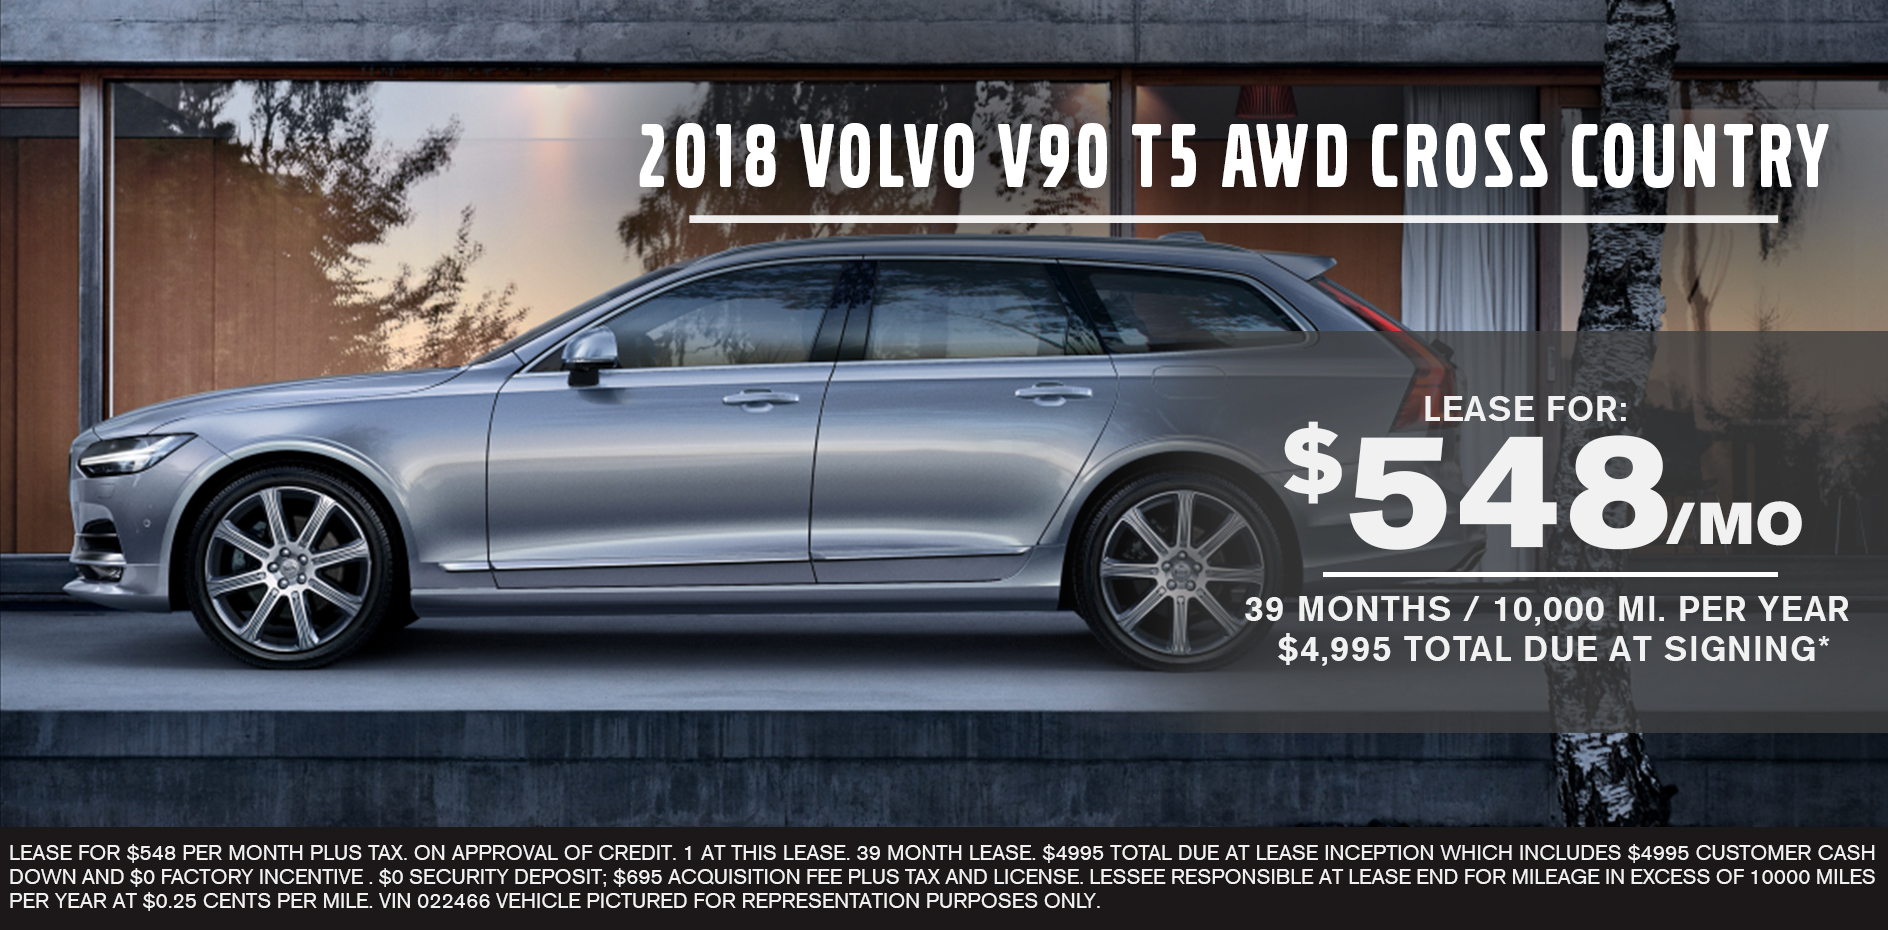 2018 Volvo V90 T5 AWD Cross Country